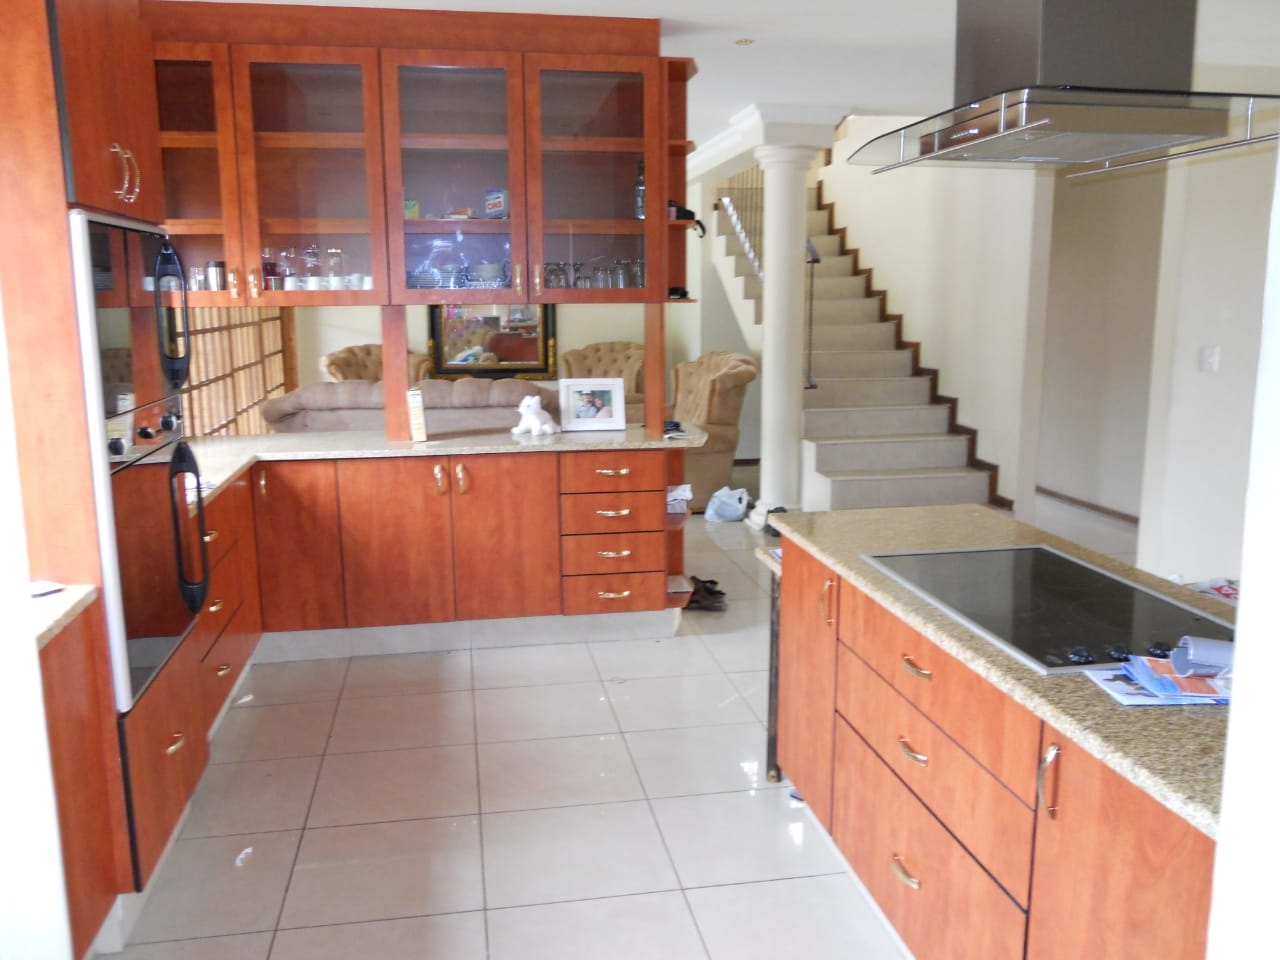 View of kitchen from scullery with staircase to upstairs on right